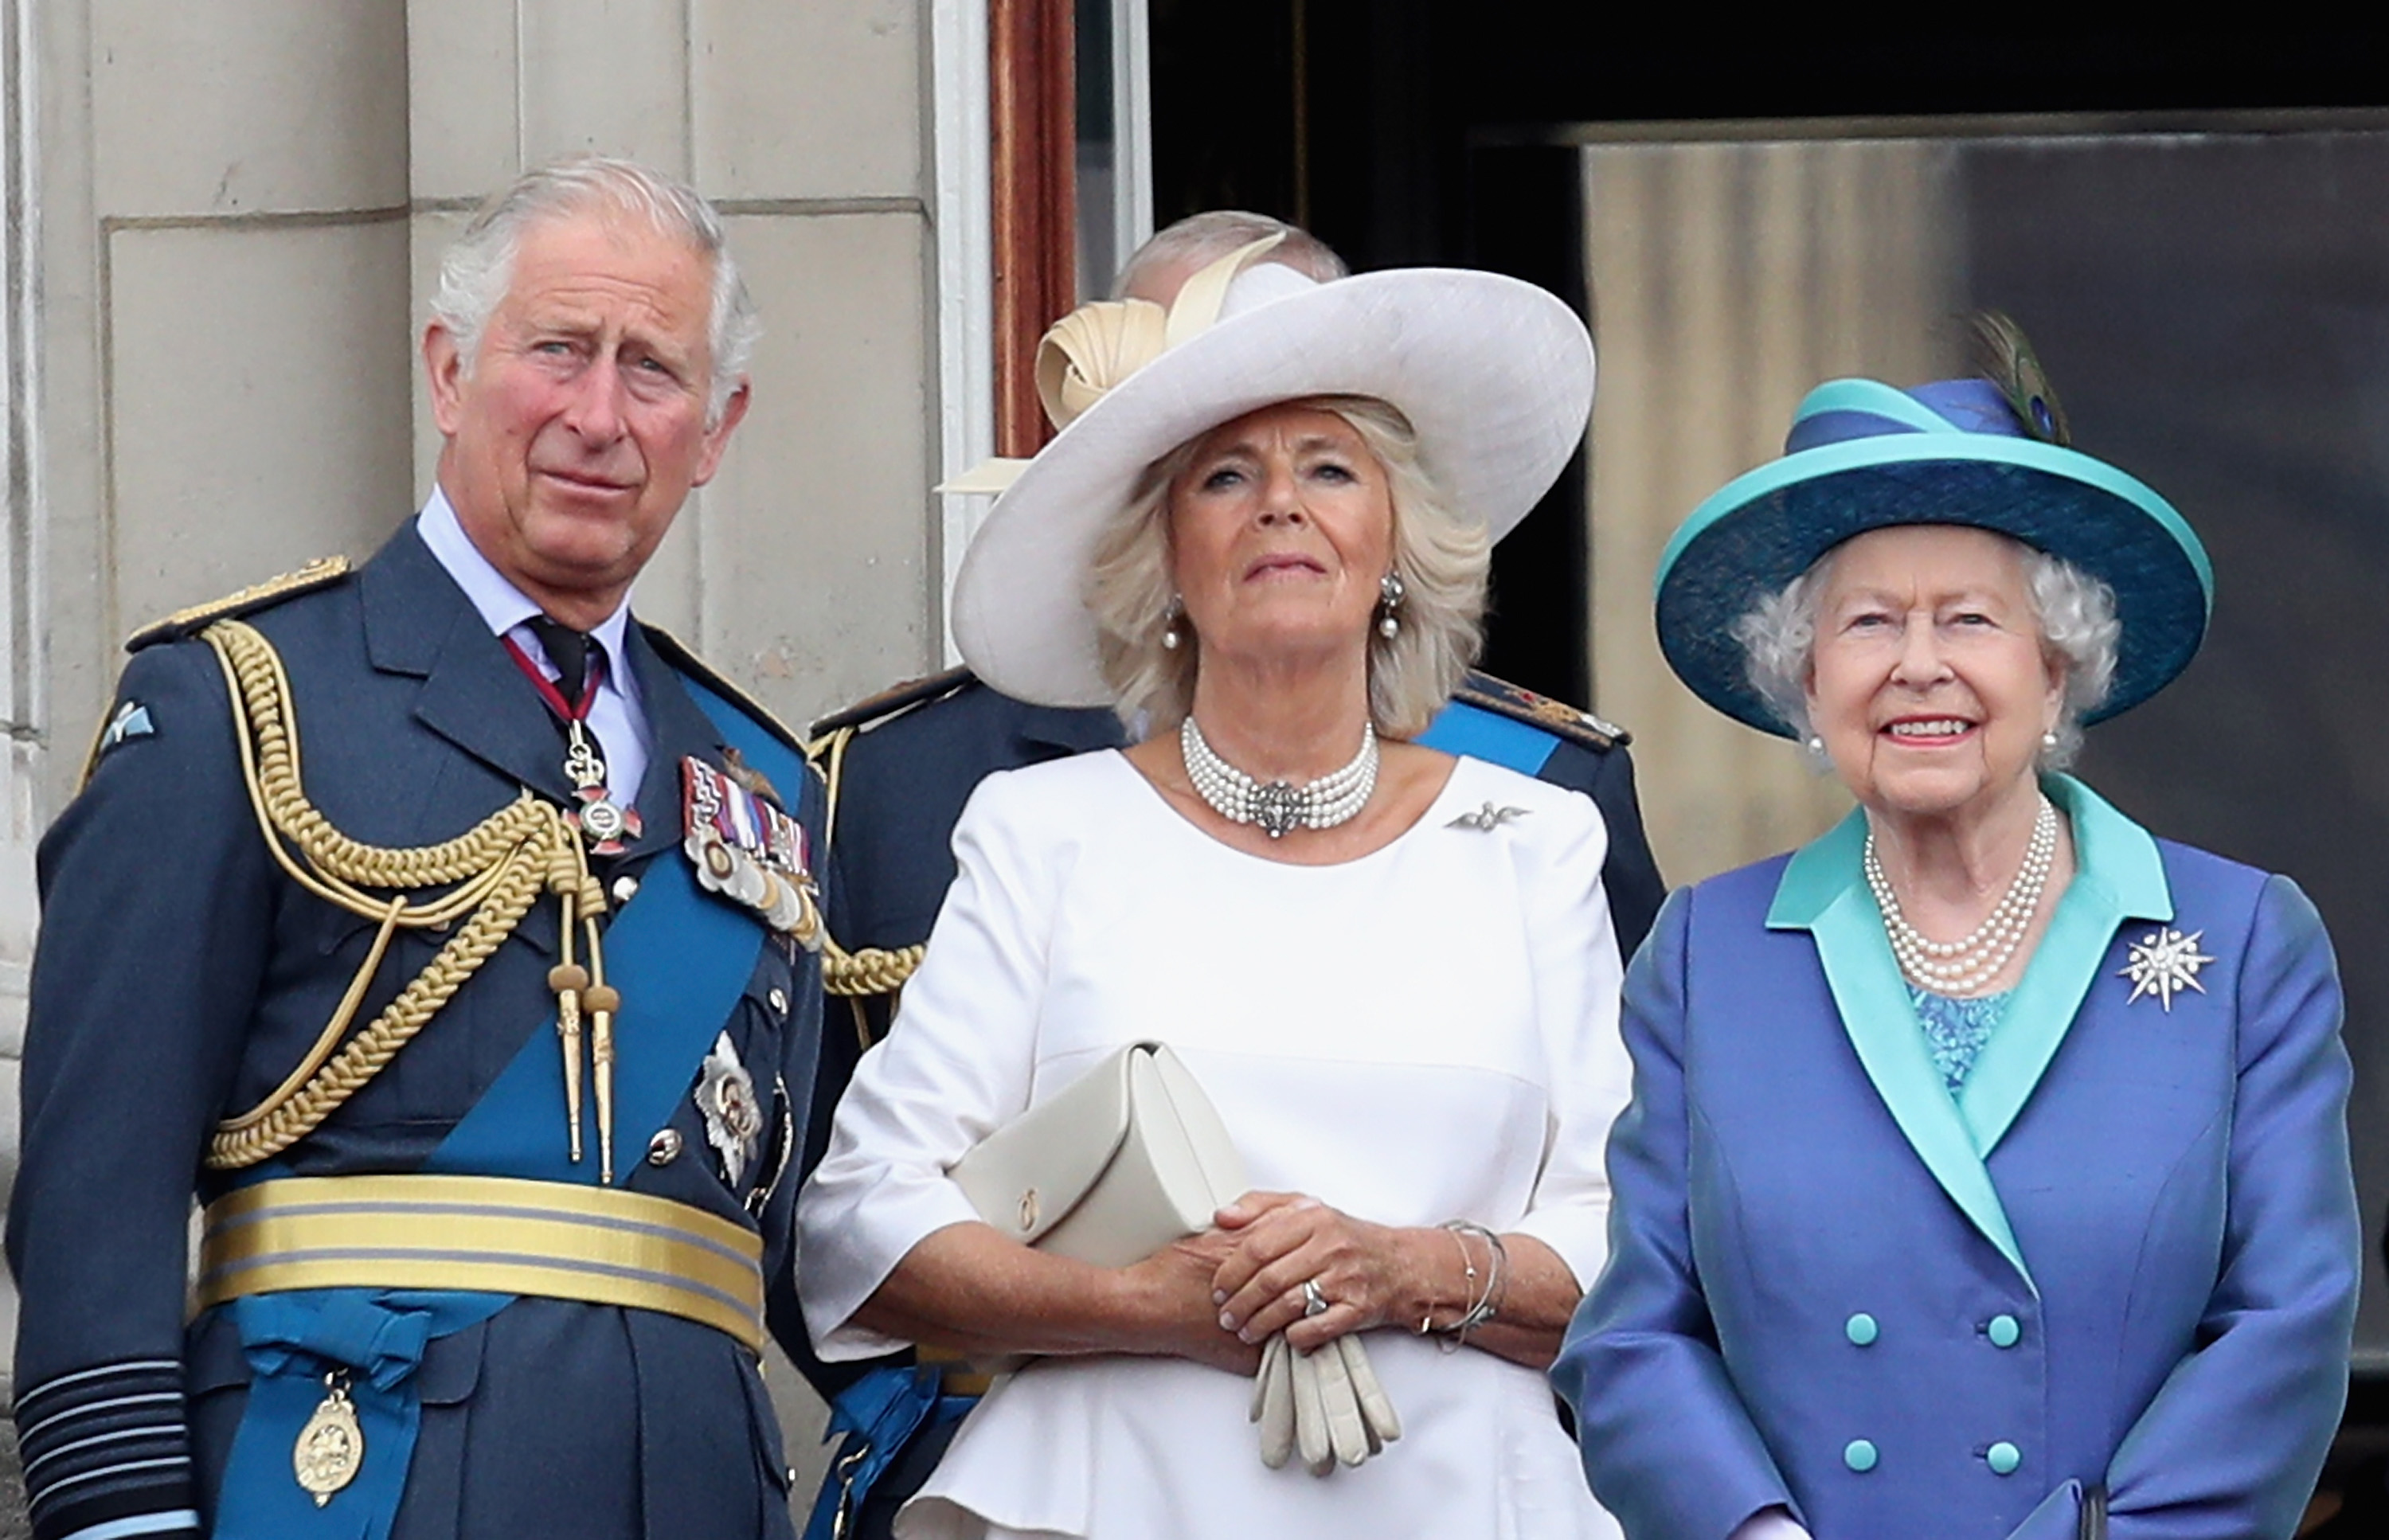 (L-R) Prince Charles, Prince of Wales, Camilla, Duchess of Cornwall, Queen Elizabeth II watch the RAF flypast on the balcony of Buckingham Palace, as members of the Royal Family attend events to mark the centenary of the RAF on July 10, 2018, in London, England. (Getty Images)